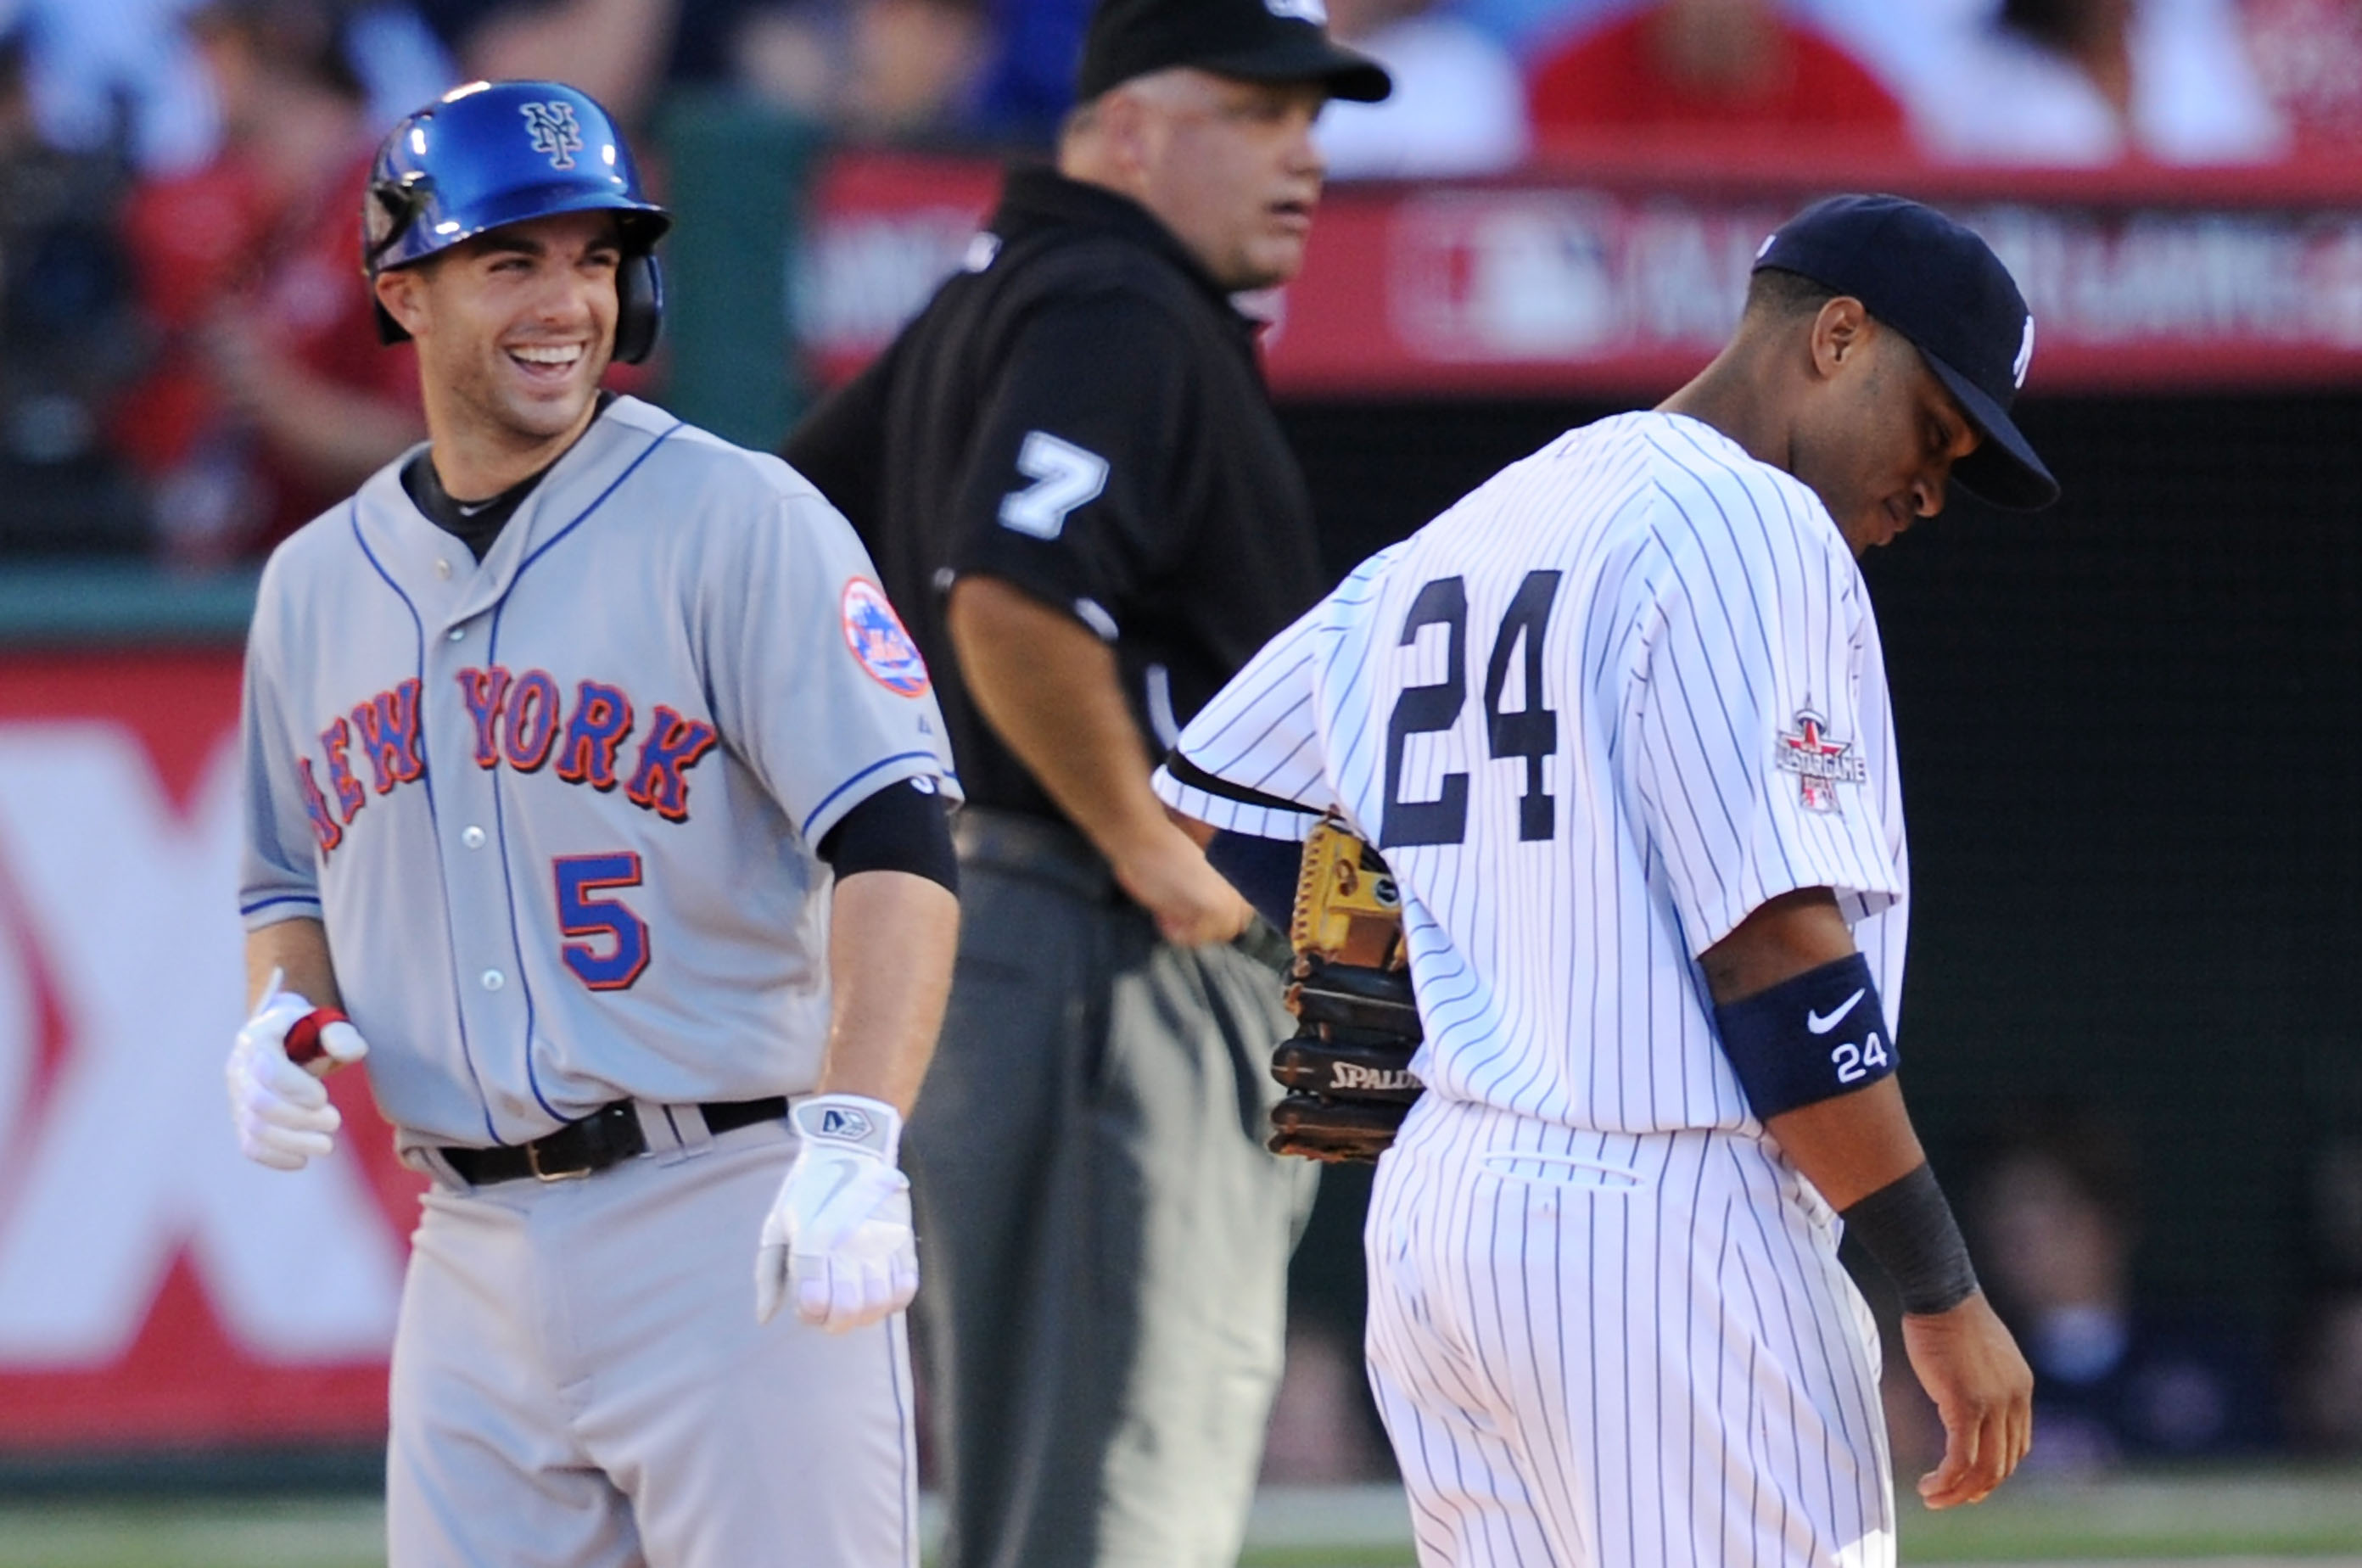 b388bb0a New York Mets: 5 Ways They Could Catch the NY Yankees | Bleacher ...